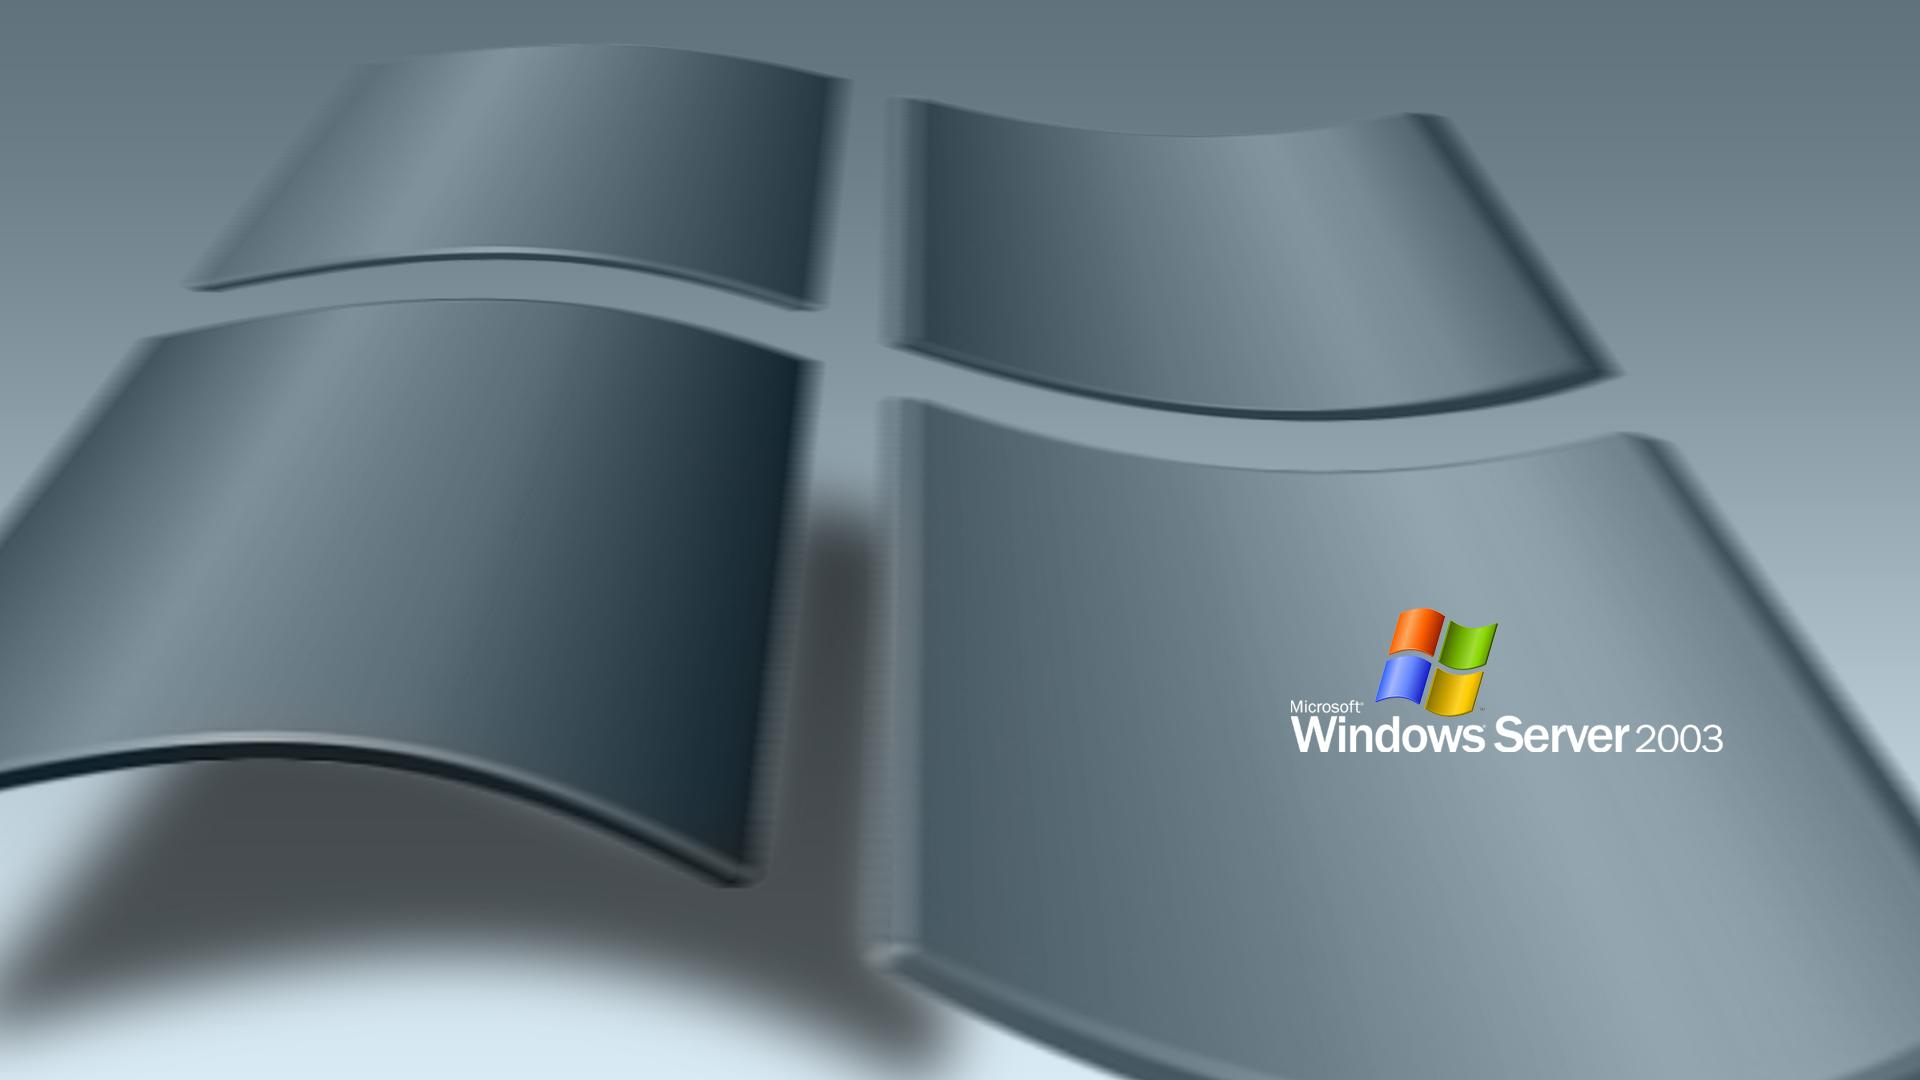 Windows Server 2008 Wallpaper